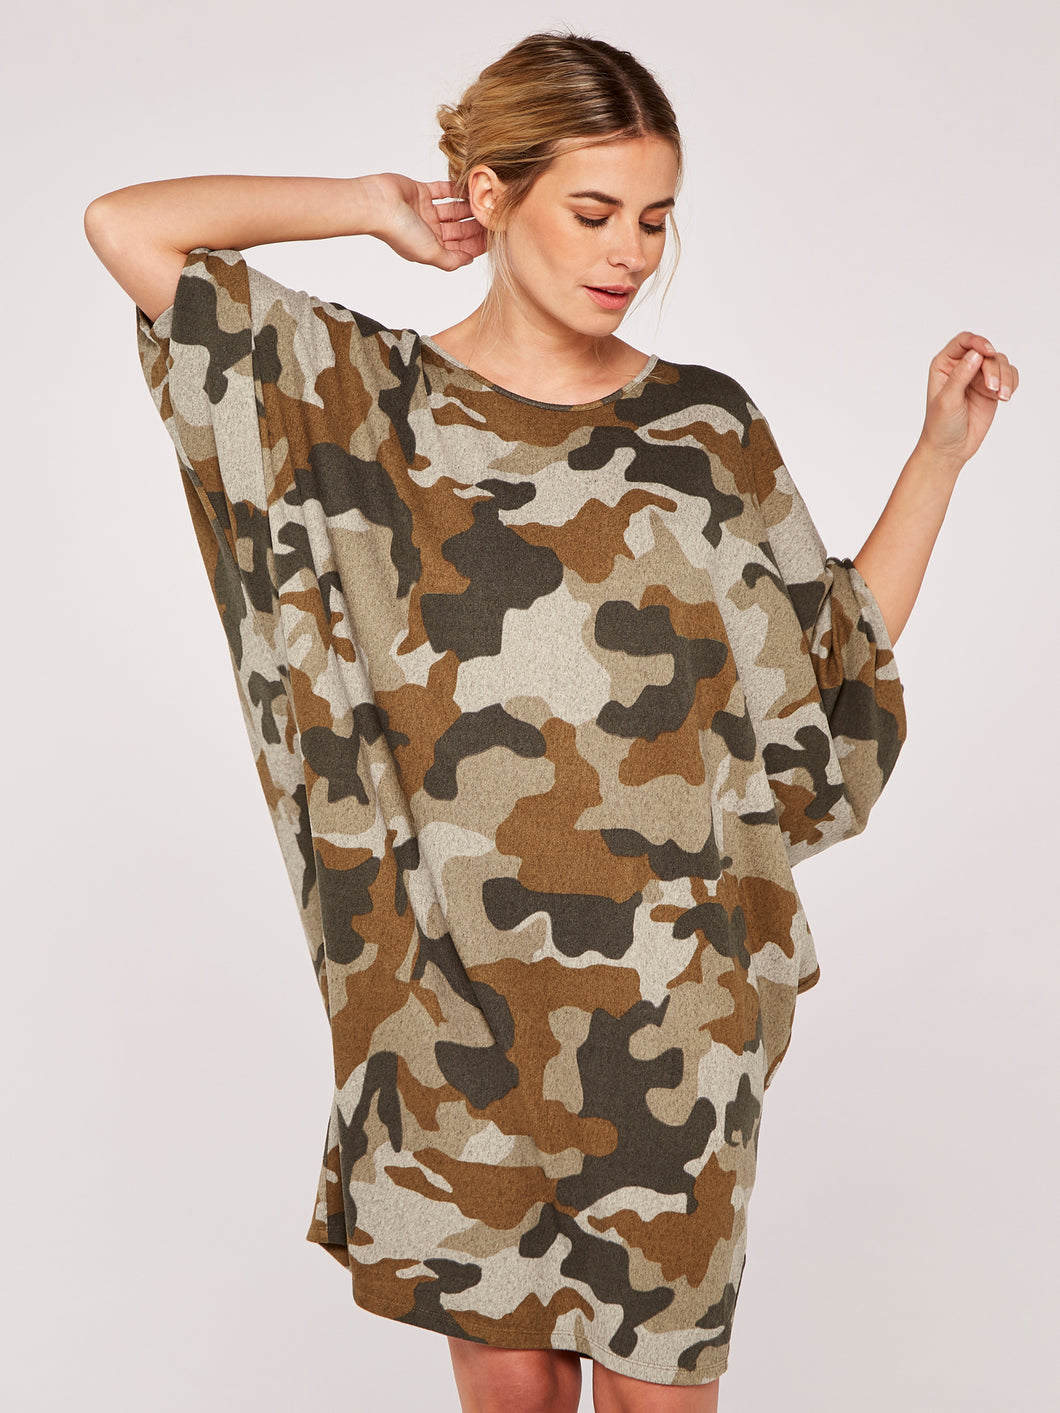 Apricot Camouflage Cozy Cocoon Dress